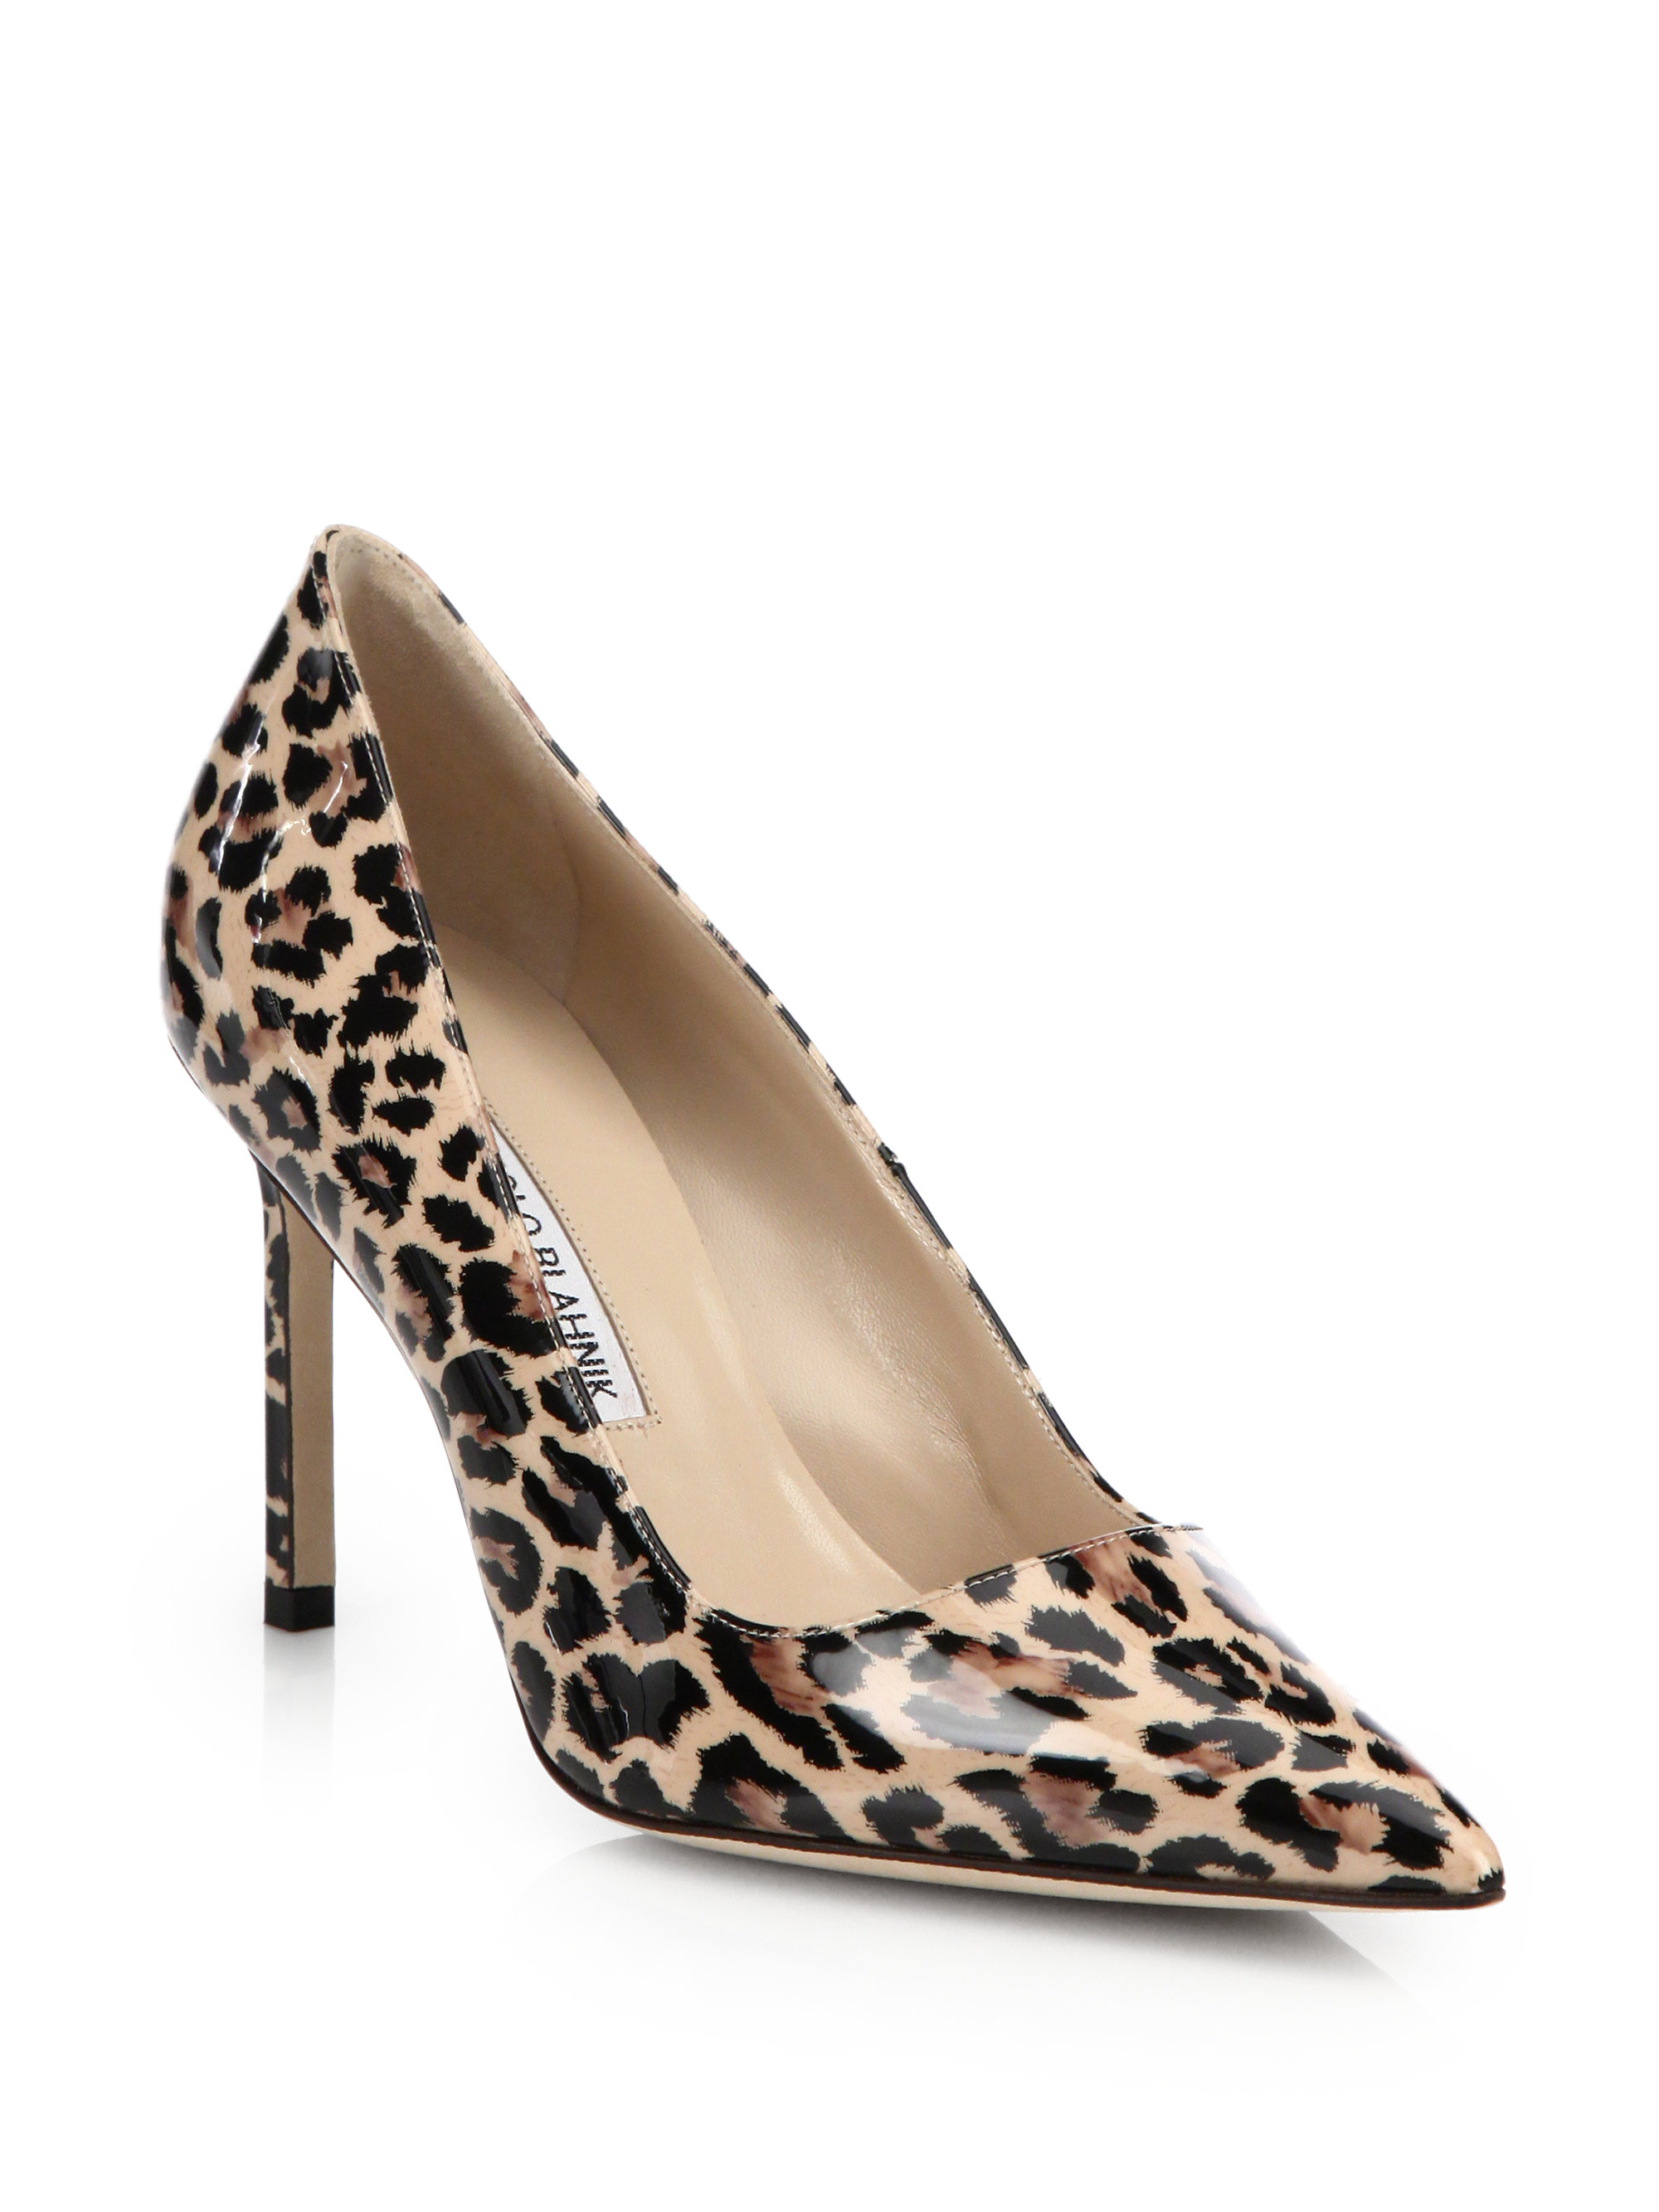 9e5851e26b0 Manolo Blahnik Multicolor Bb 90 Leopard Print Patent Leather Point-toe Pumps